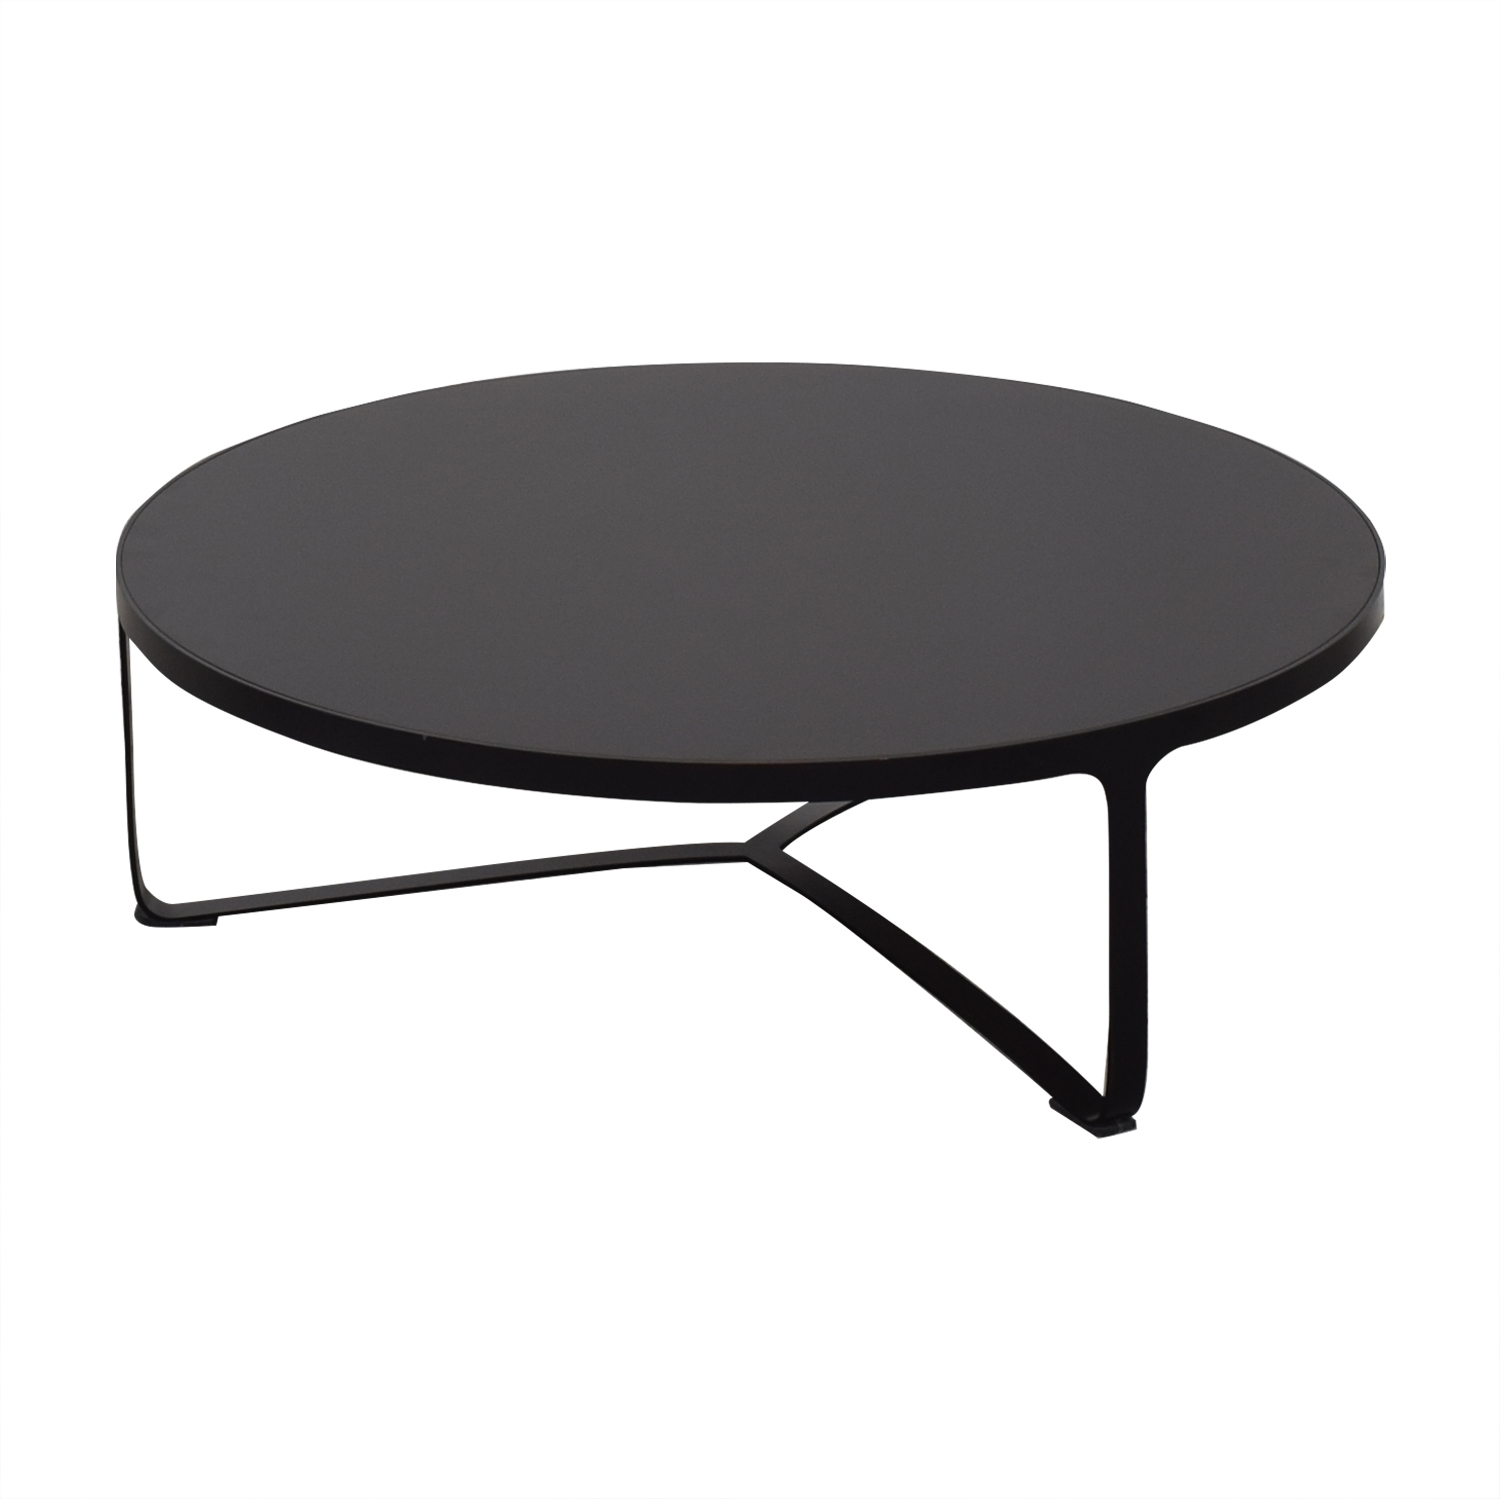 Design Within Reach Design Within Reach Cage Coffee Table by Tacchini second hand